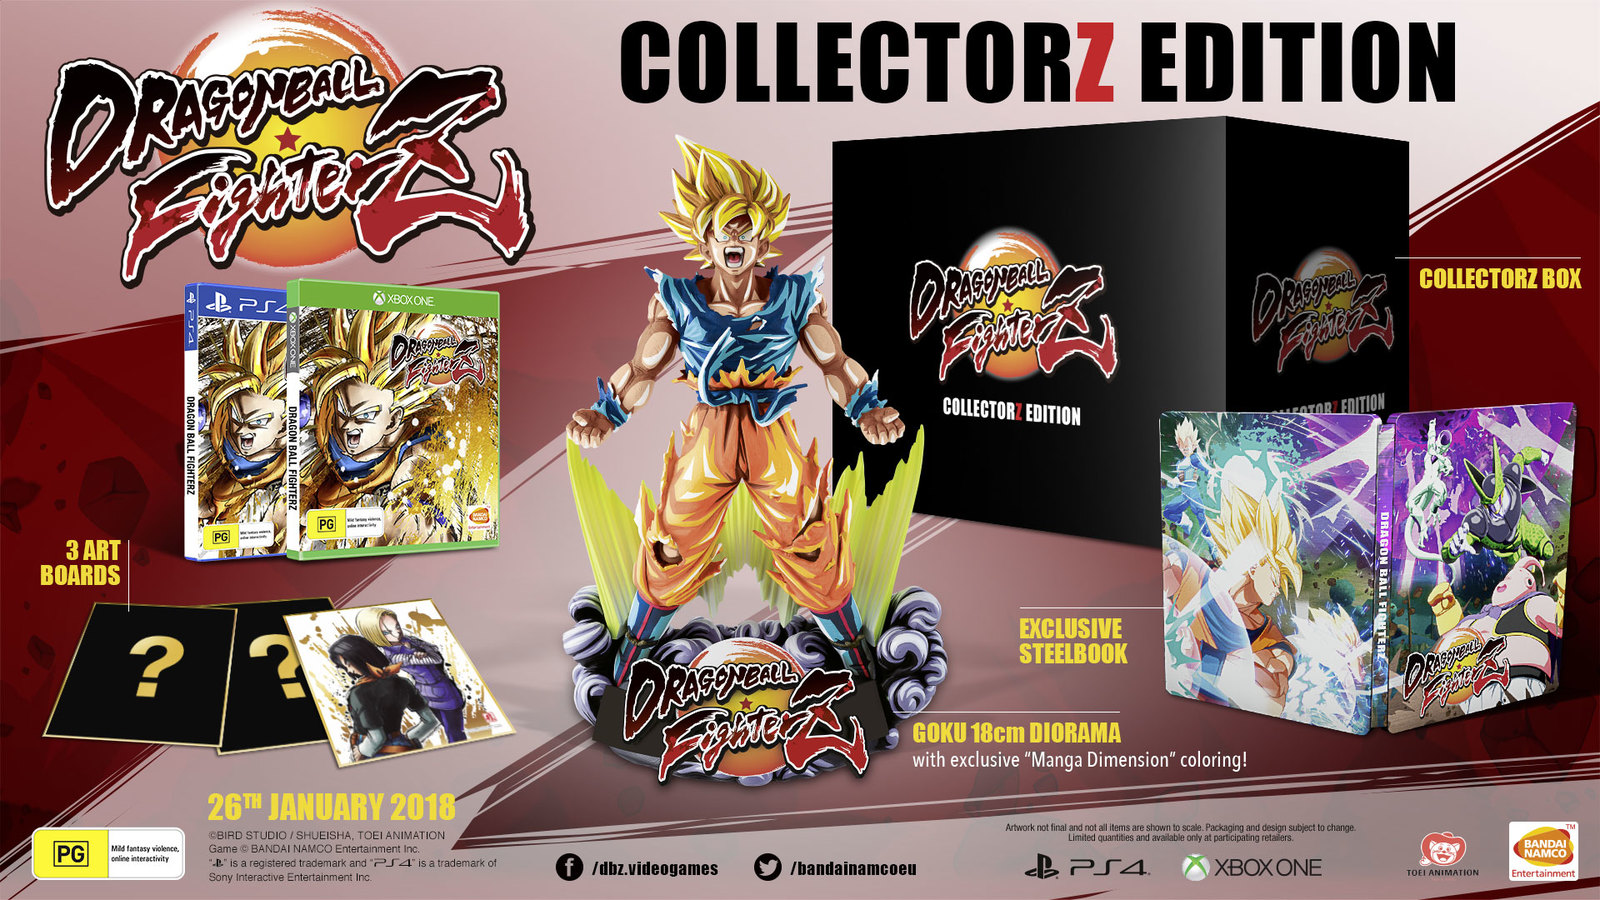 Dragon Ball FighterZ Collector's Edition for Xbox One image